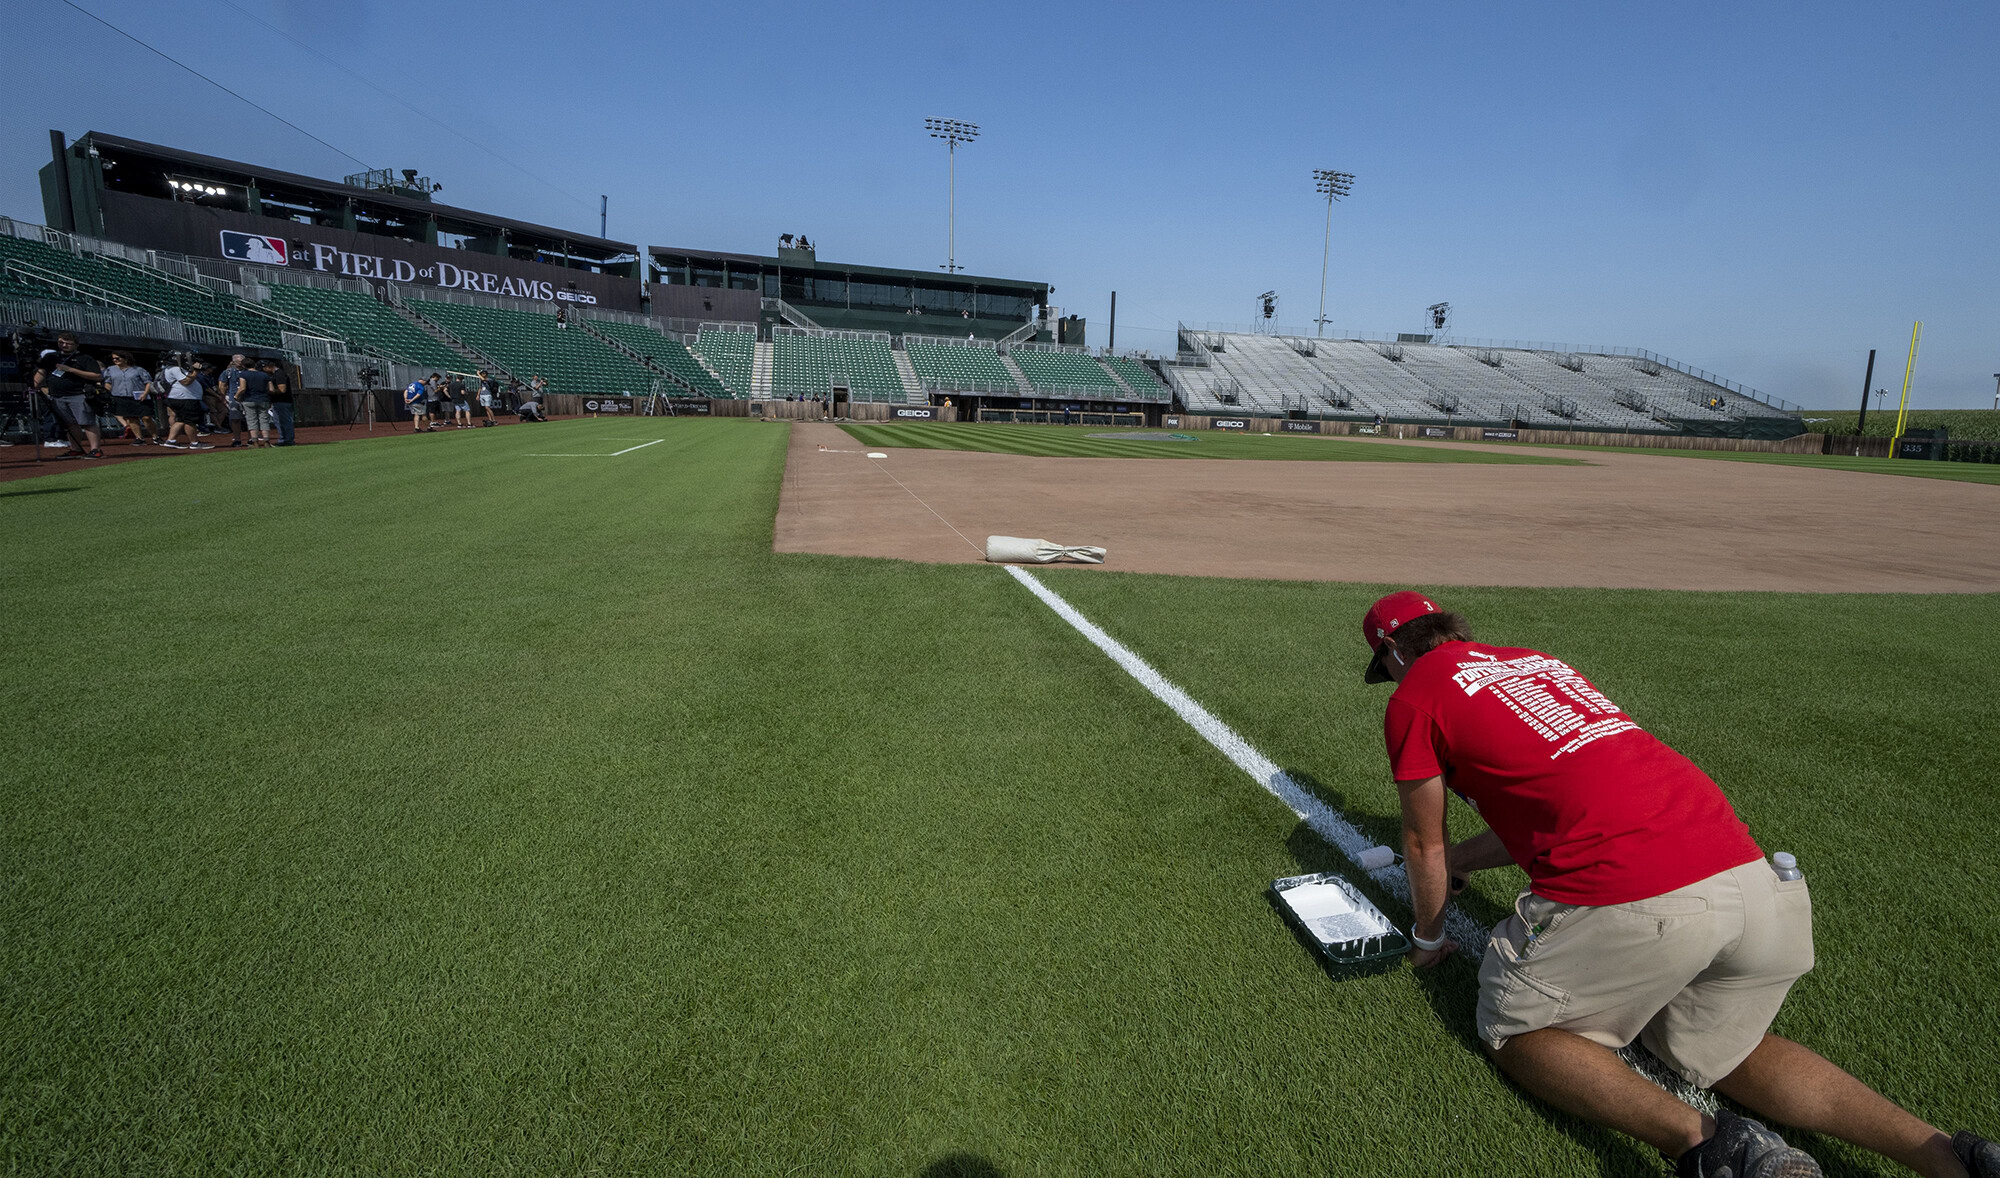 If you build it, they will pay: 'Field of Dreams' tickets cost $1,400